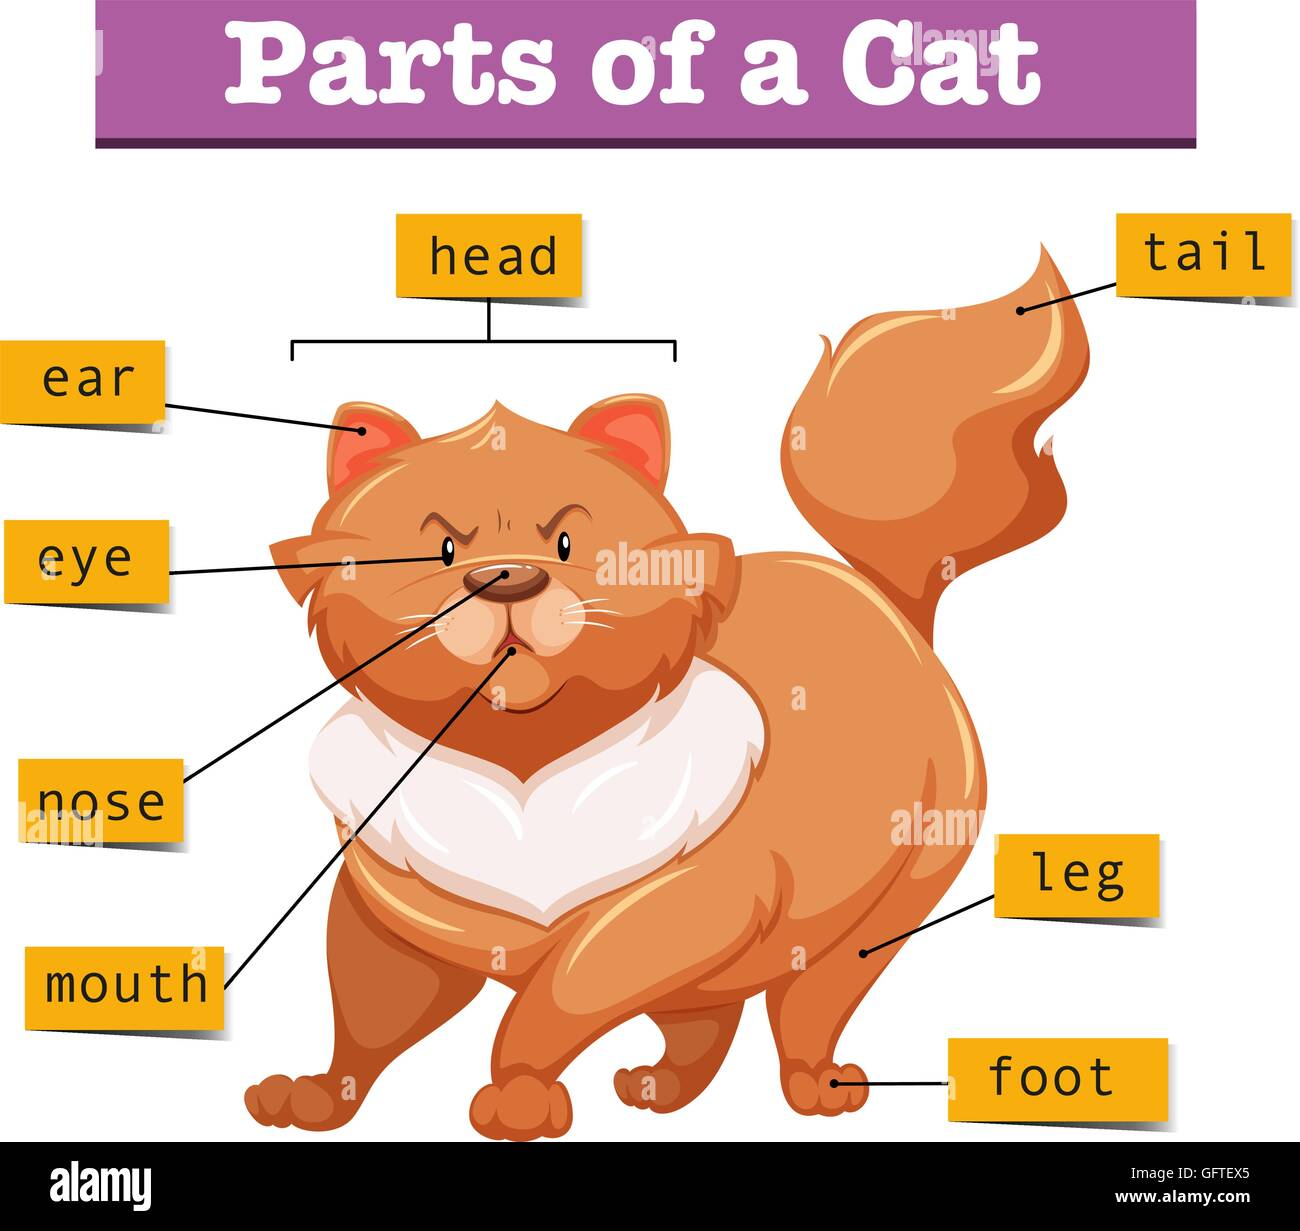 Parts Of A Cats Ear Diagram - Electrical Work Wiring Diagram •